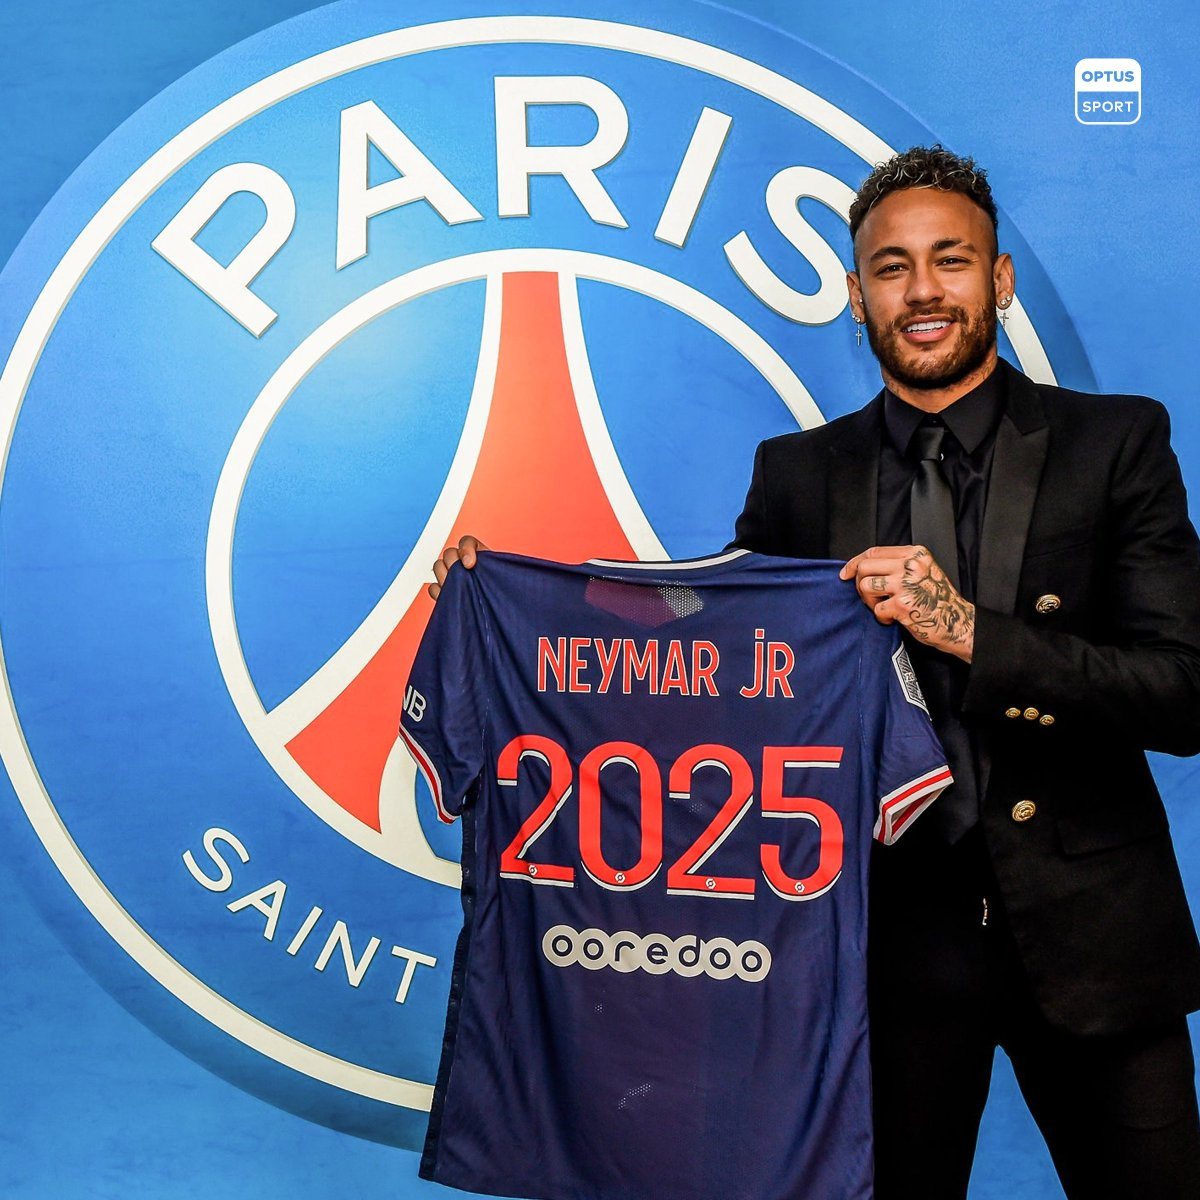 Neymar extends his Paris stay until 2025 🇫🇷  🤑 A salary reportedly worth €30m ($46m AUD).  💰 With a bonus to be paid 𝒊𝒇 PSG can win the Champions League.  #UCL #OptusSport https://t.co/KACnsk02fi